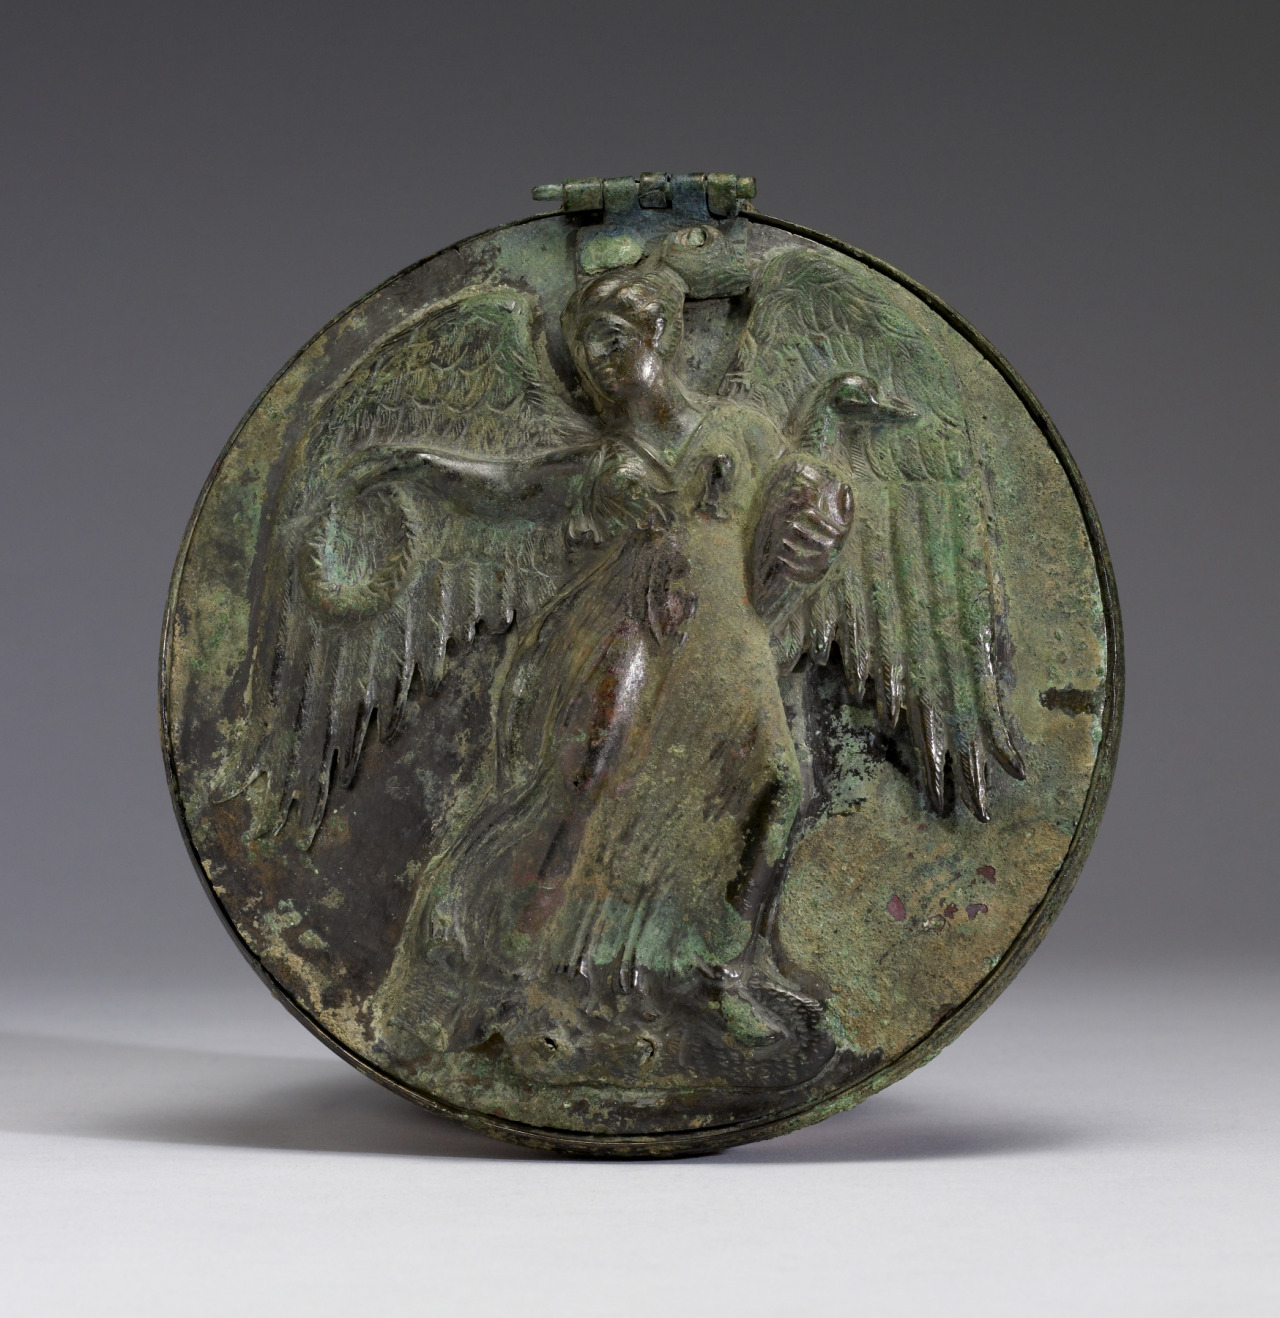 ancientart:  Ancient Greek Mirror with Winged Female Holding Wreath and Goose, 3rd century BC, bronze. Courtesy & currently located at the Walters Art Museum, Baltimore, USA:  A winged woman (possibly Nike, the goddess of victory) rendered frontally in repoussé adorns the cover of this large hinged mirror. She moves swiftly to the right as she glances back over her shoulder. In her left hand, she holds a swan or goose close to her body. Her extended right hand holds a wreath. The loose, flowing garment clings to the figure, revealing her body beneath. Such a mirror would have been a suitable offering to a heroine. In vase-painting Helen is frequently shown holding a mirror, an attribute that emphasizes her celebrated beauty; it also appears in vase-painting as an attribute of brides. The wings of the goddess Nike, who personified military victory as well as triumph in athletic or musical competitions, probably indicate her ability to bring swift victory. She was also associated with love and the world of women.